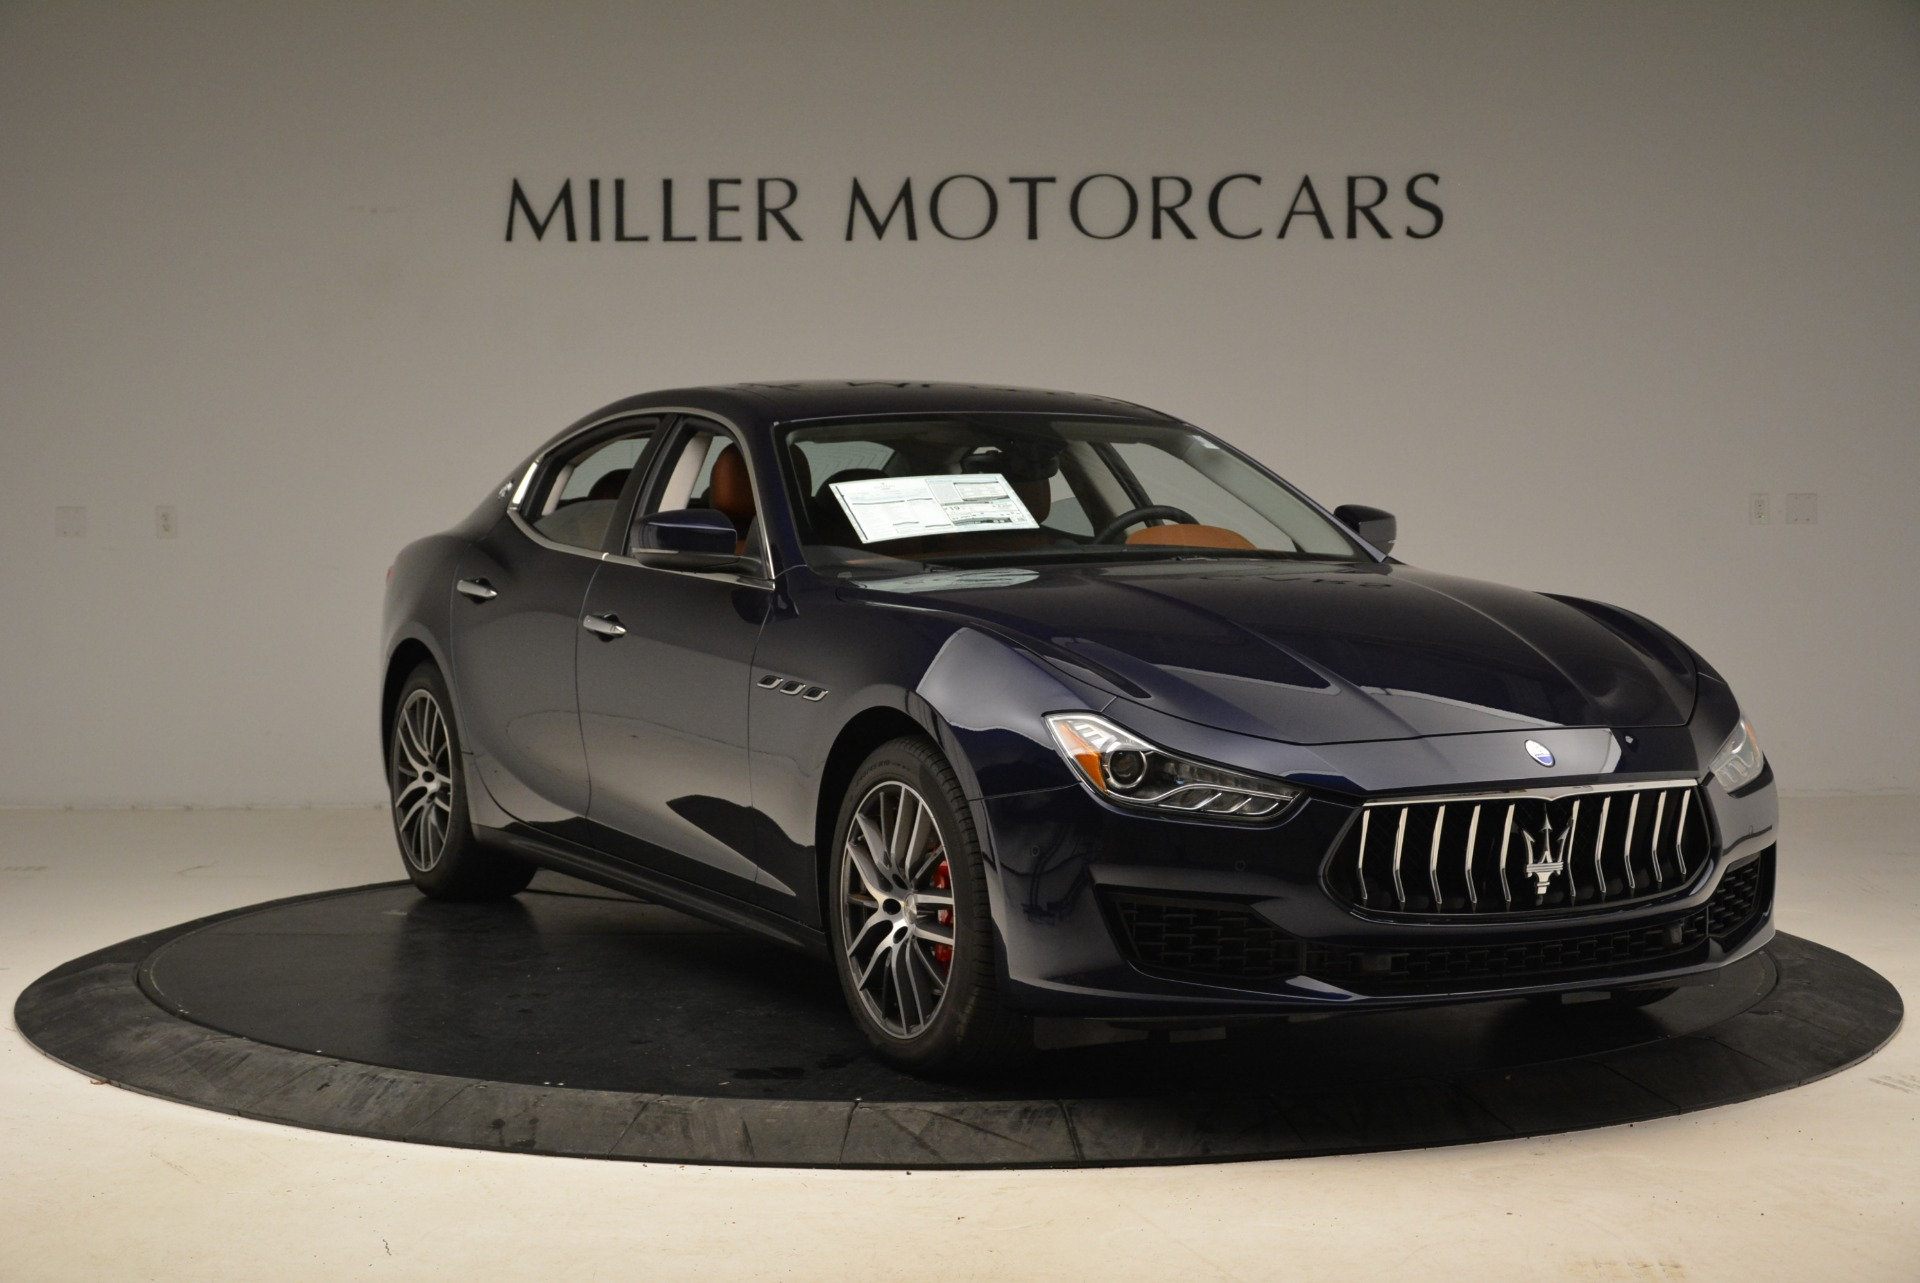 New 2018 Maserati Ghibli S Q4 For Sale In Greenwich, CT 1559_p11